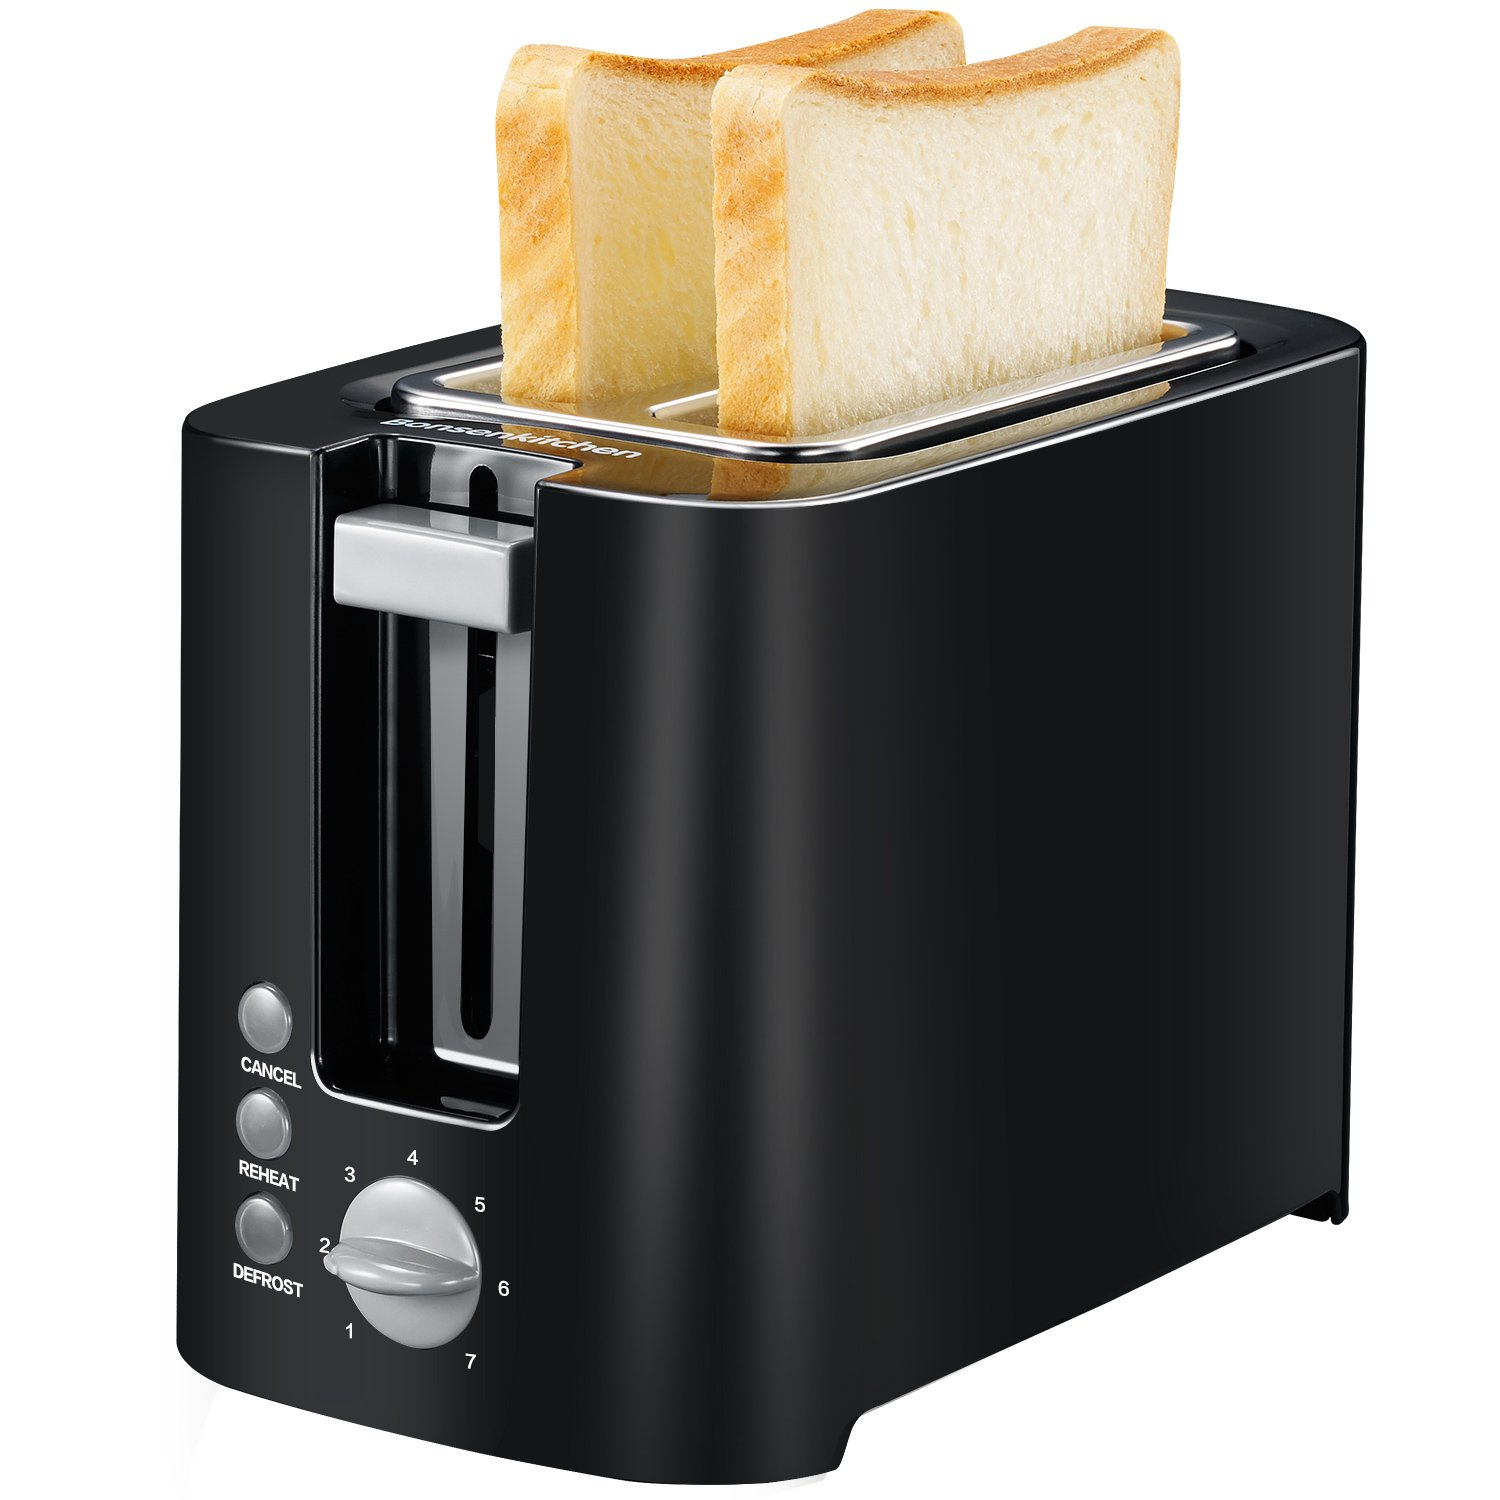 Bonsenkitchen 2-slice Black Toaster Small Compact Bread Toaster for Space Saving by Bonsenkitchen